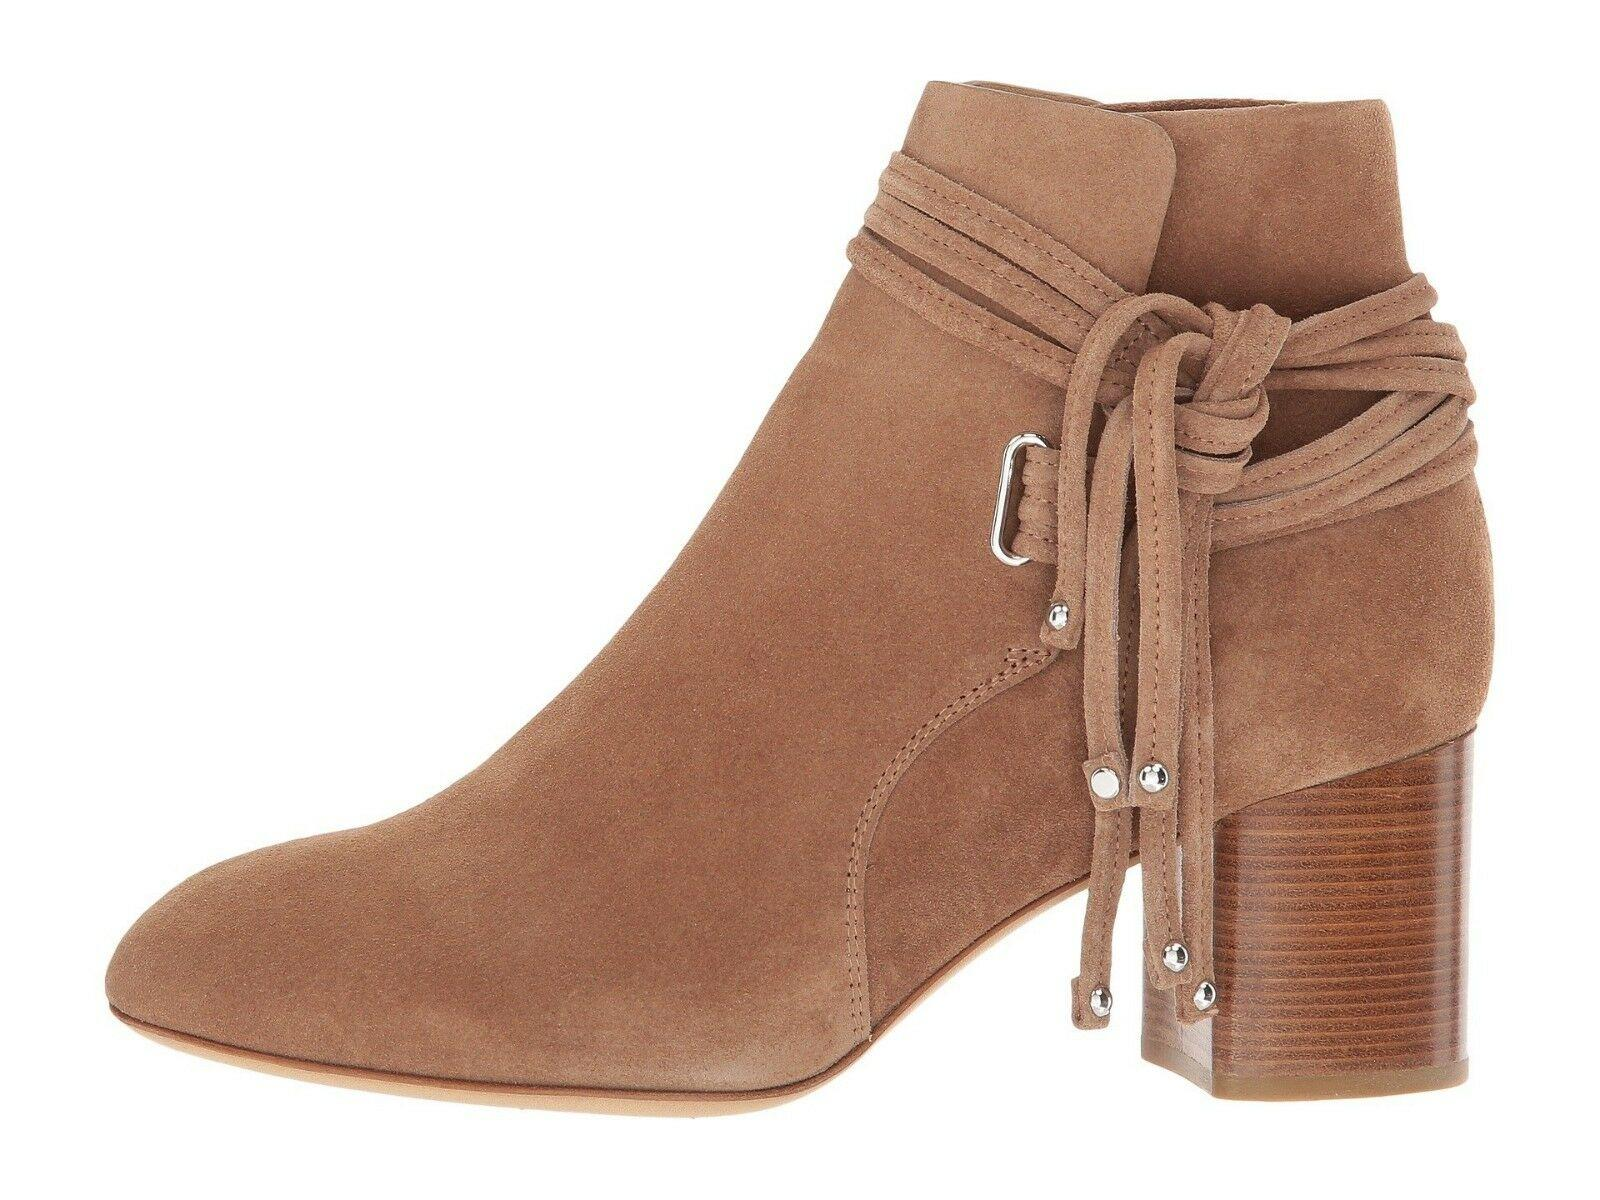 $575 Rag & Bone DALIA II Camel Suede Boots Ankle Booties Fringe Tie Shoes 39